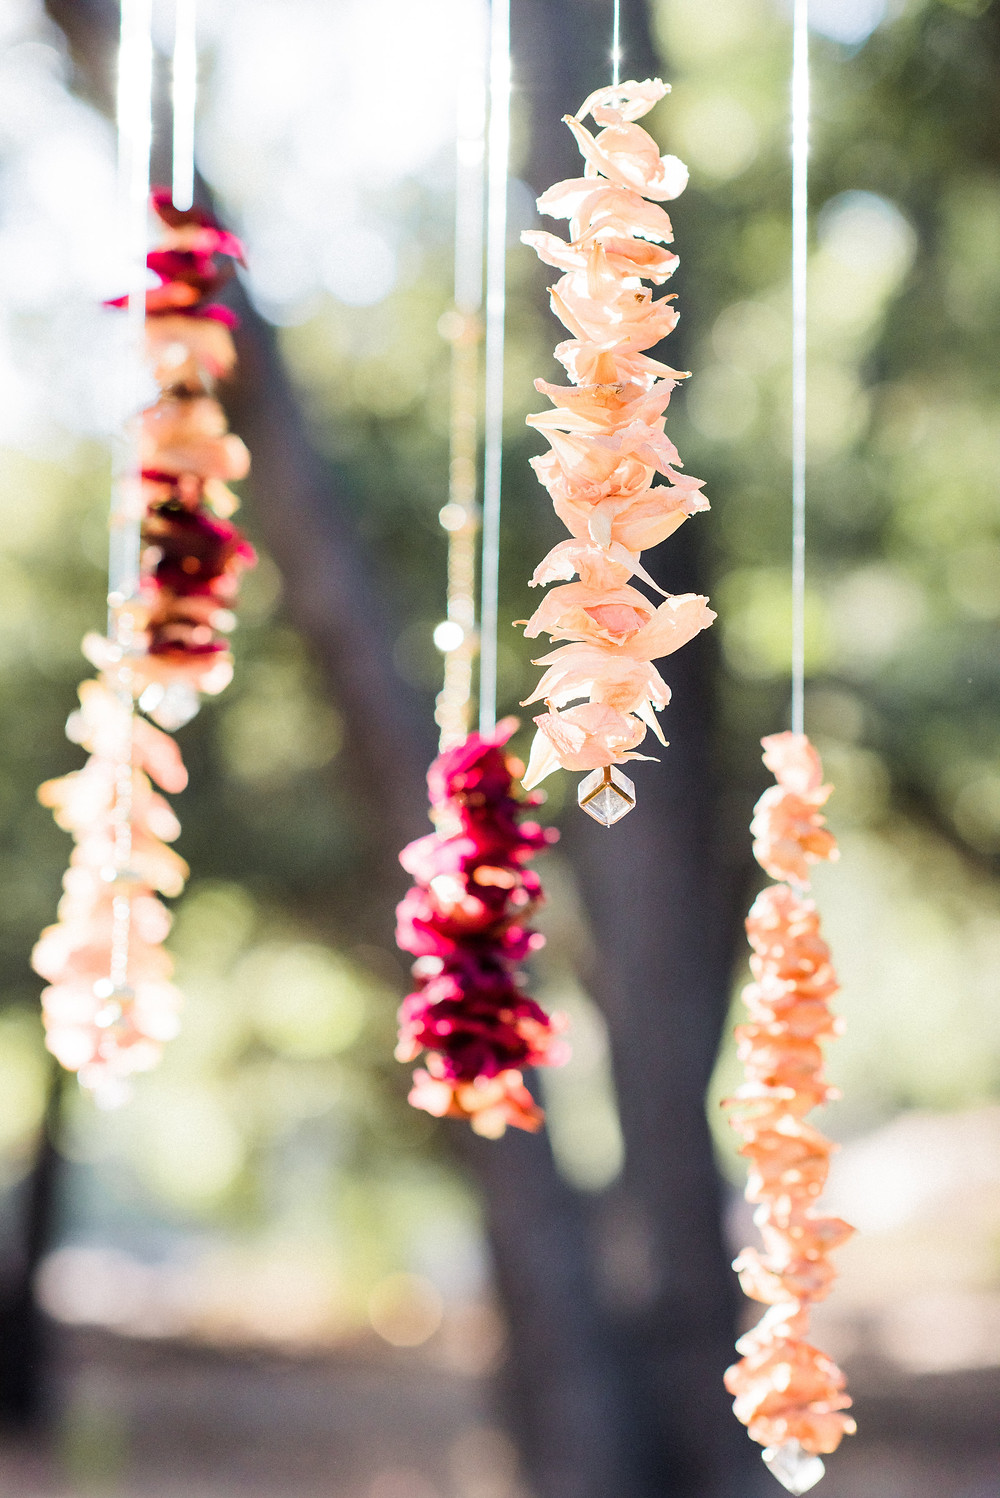 Dried flowers hang decoratively over the dining table